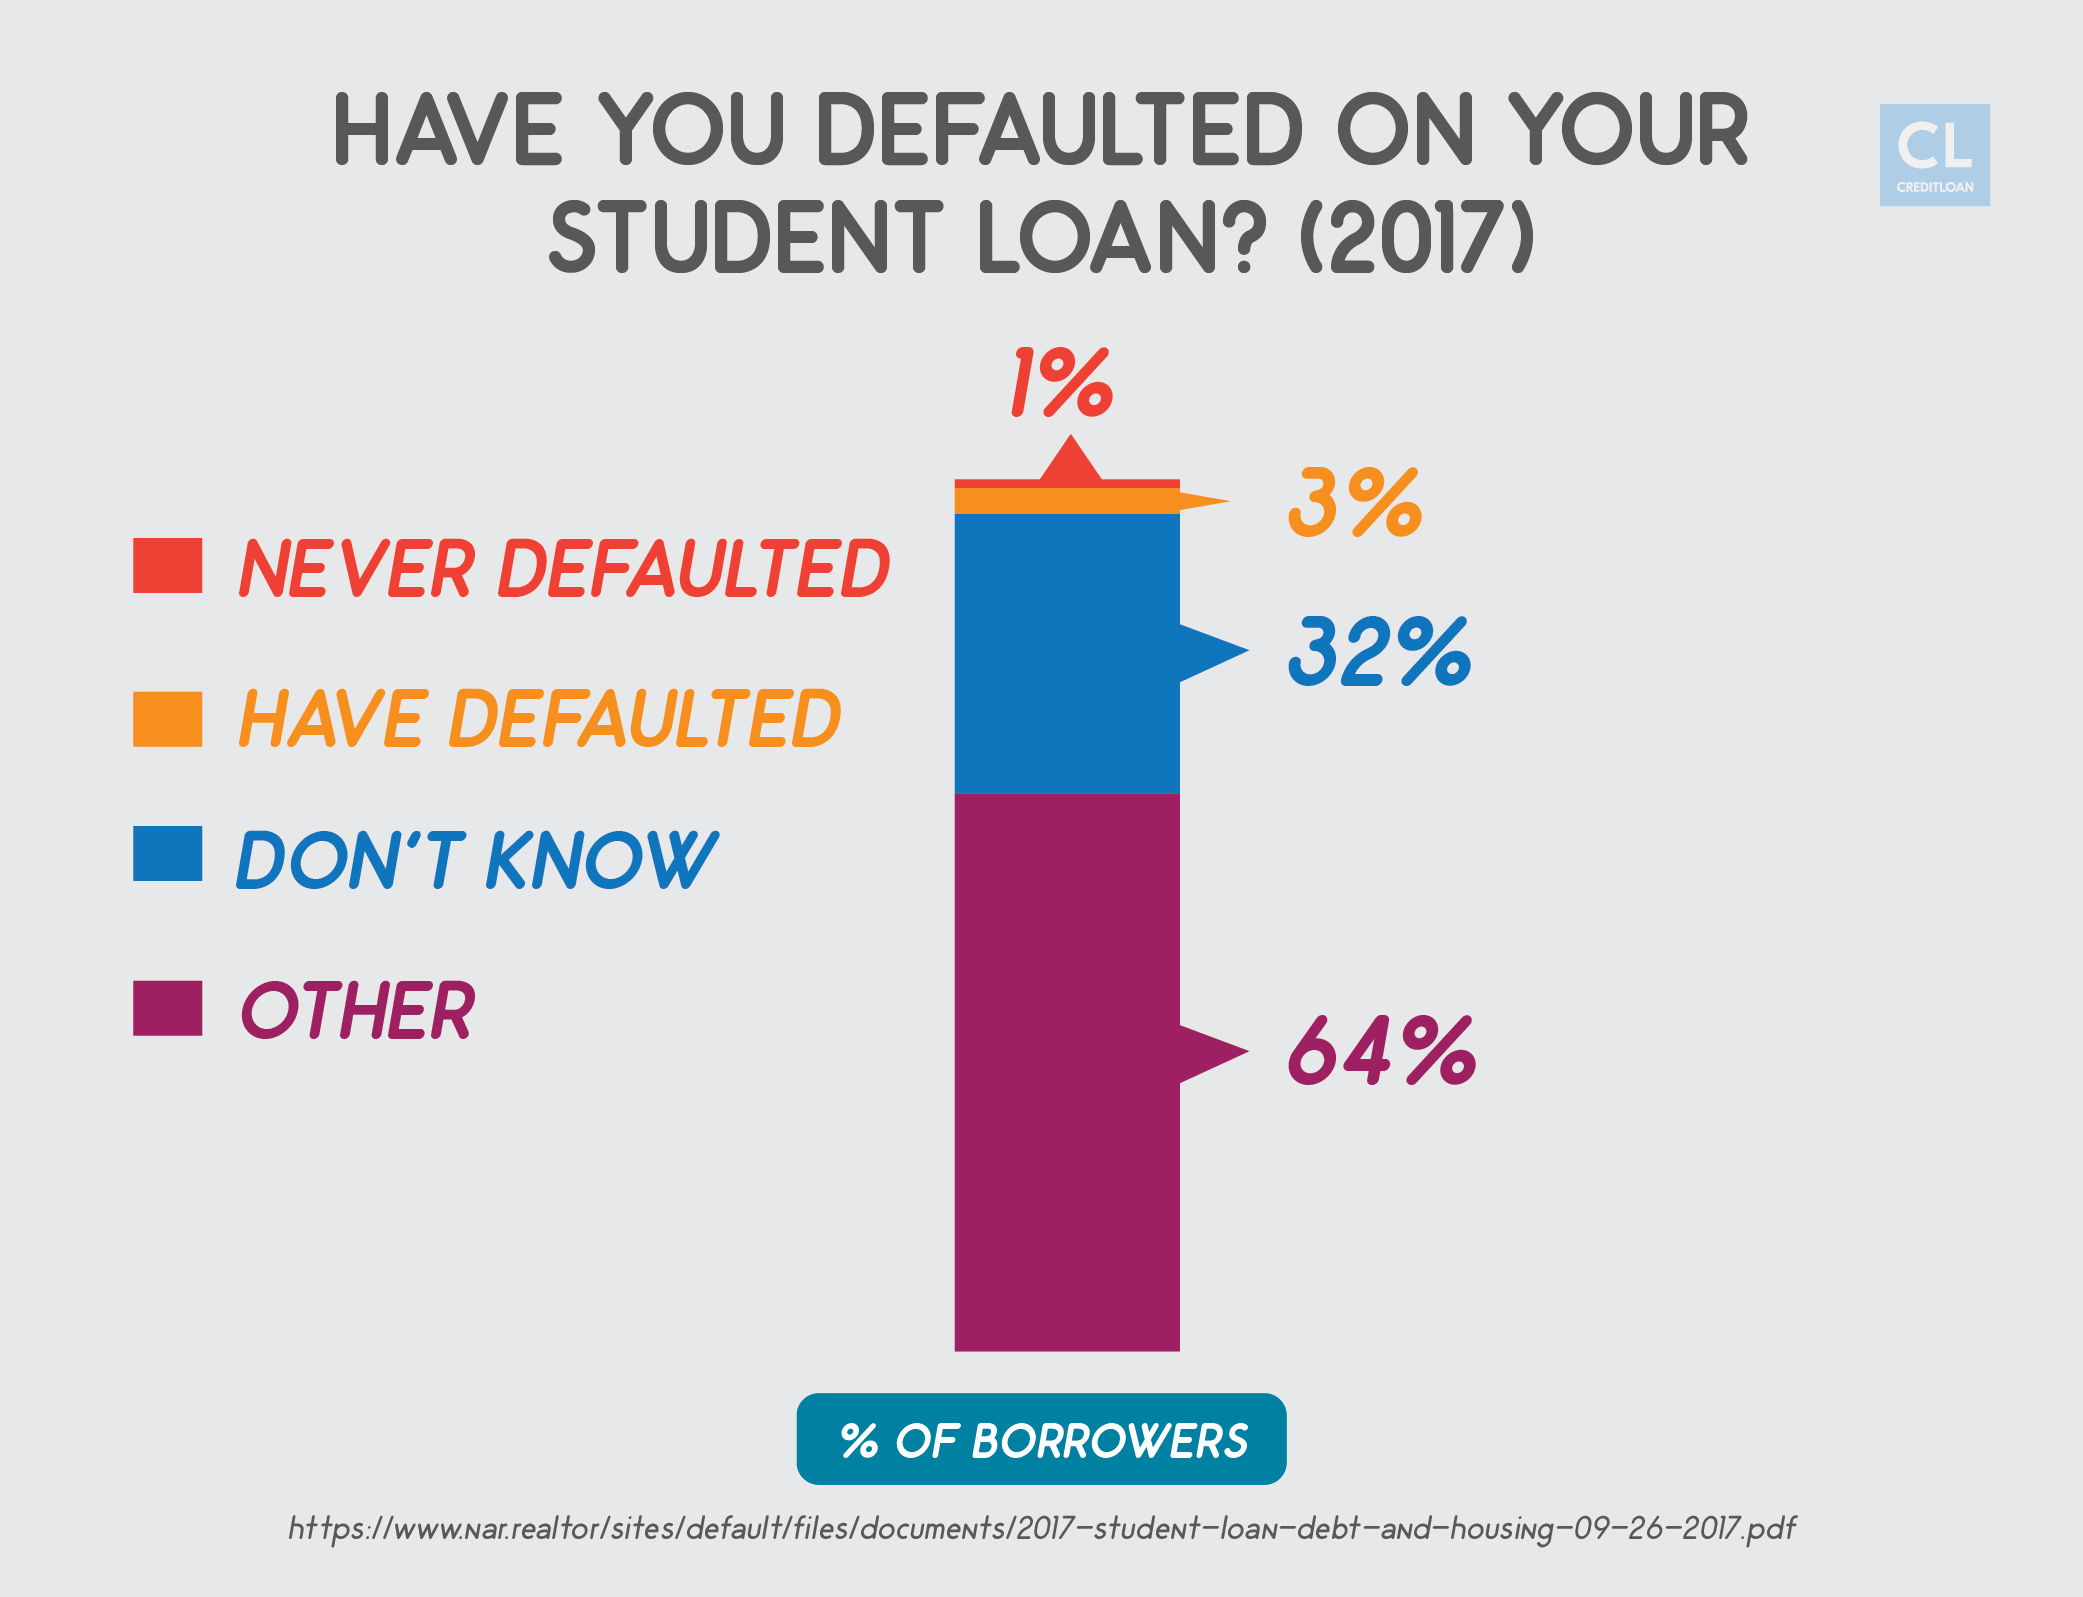 Default Rates on Student Loans (2017)